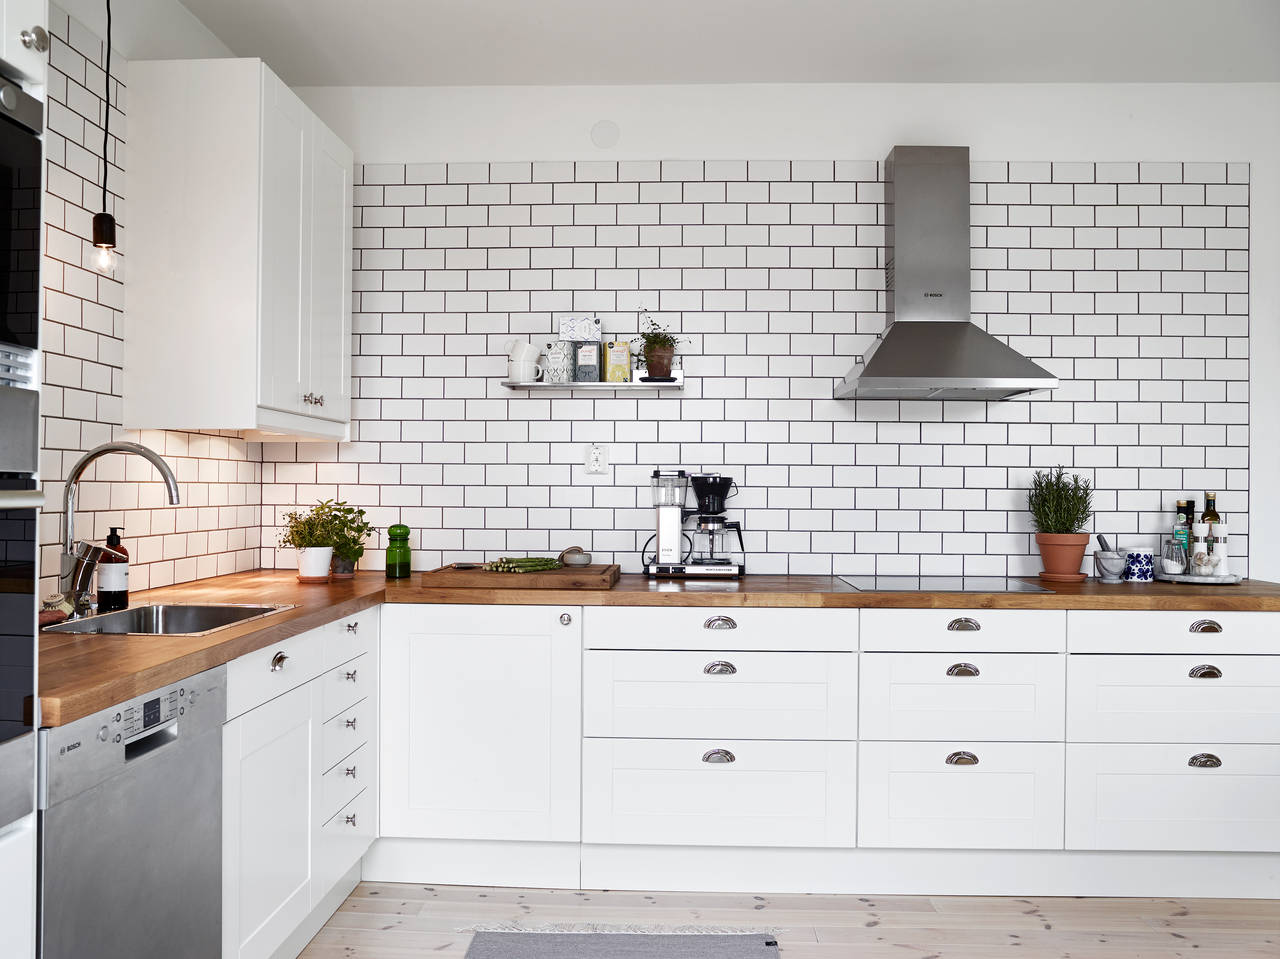 - A White Tiles, Black Grout Kind Of Kitchen - COCO LAPINE